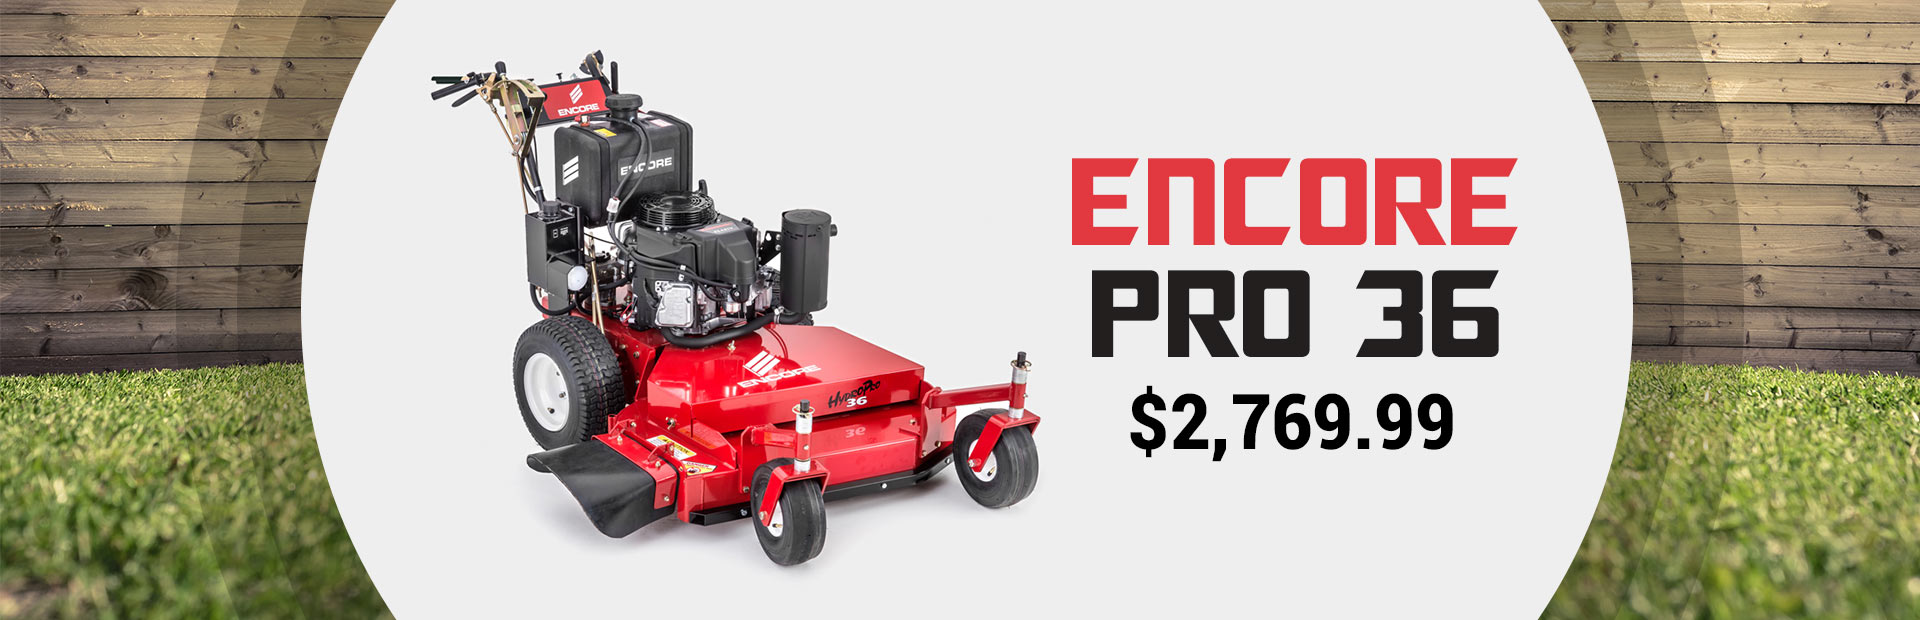 Get the Encore Pro 36 for just $2,769.99!